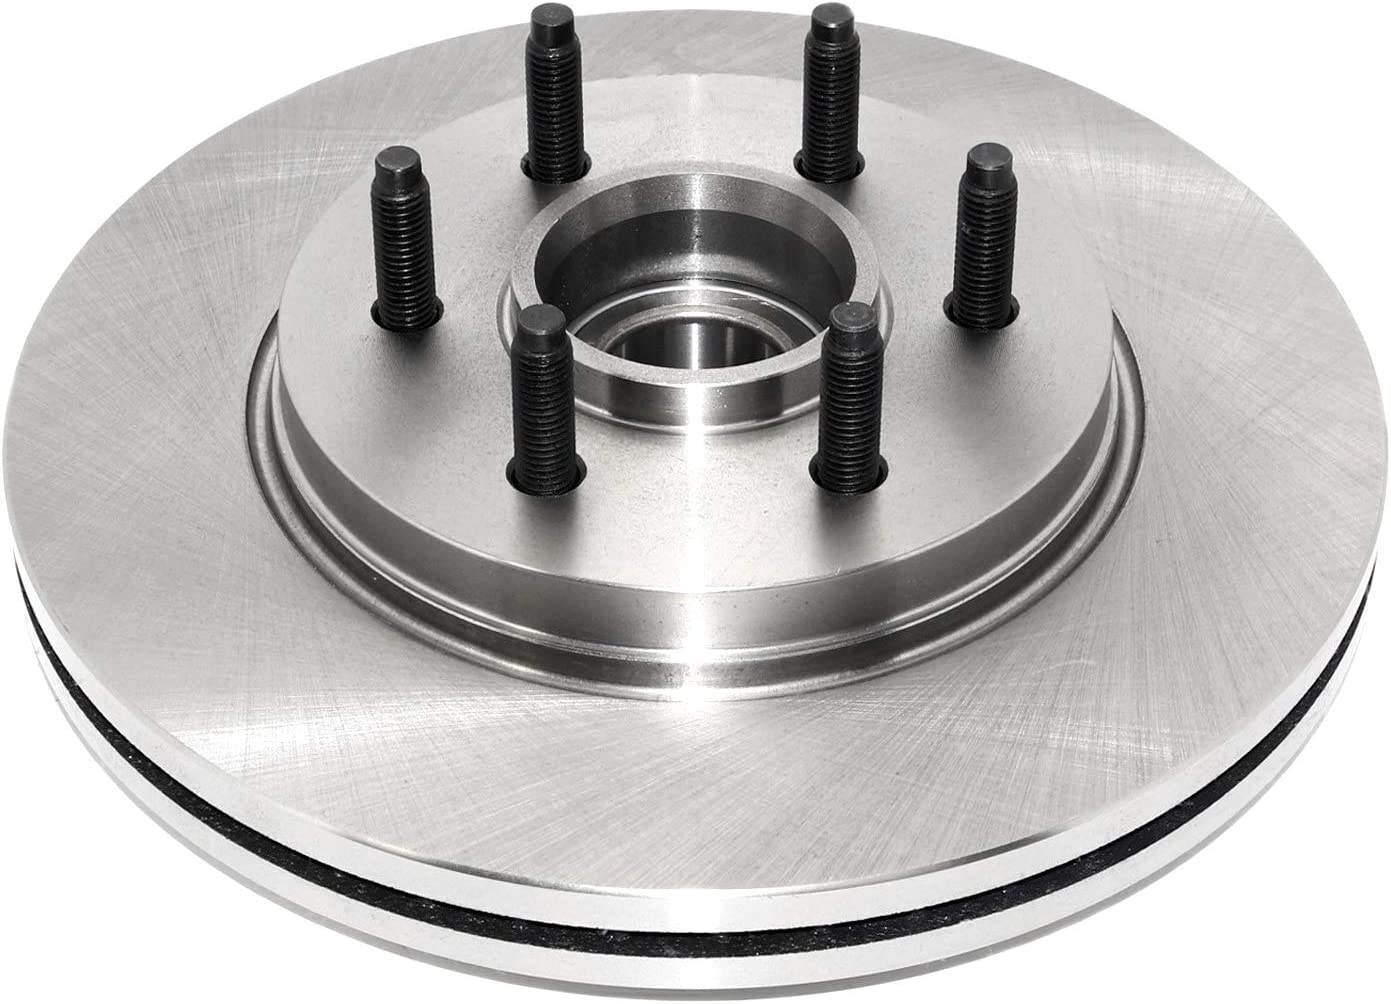 DuraGo BR54107 Front Vented Disc Max Financial sales sale 70% OFF Brake with Rotor Bearing Hub